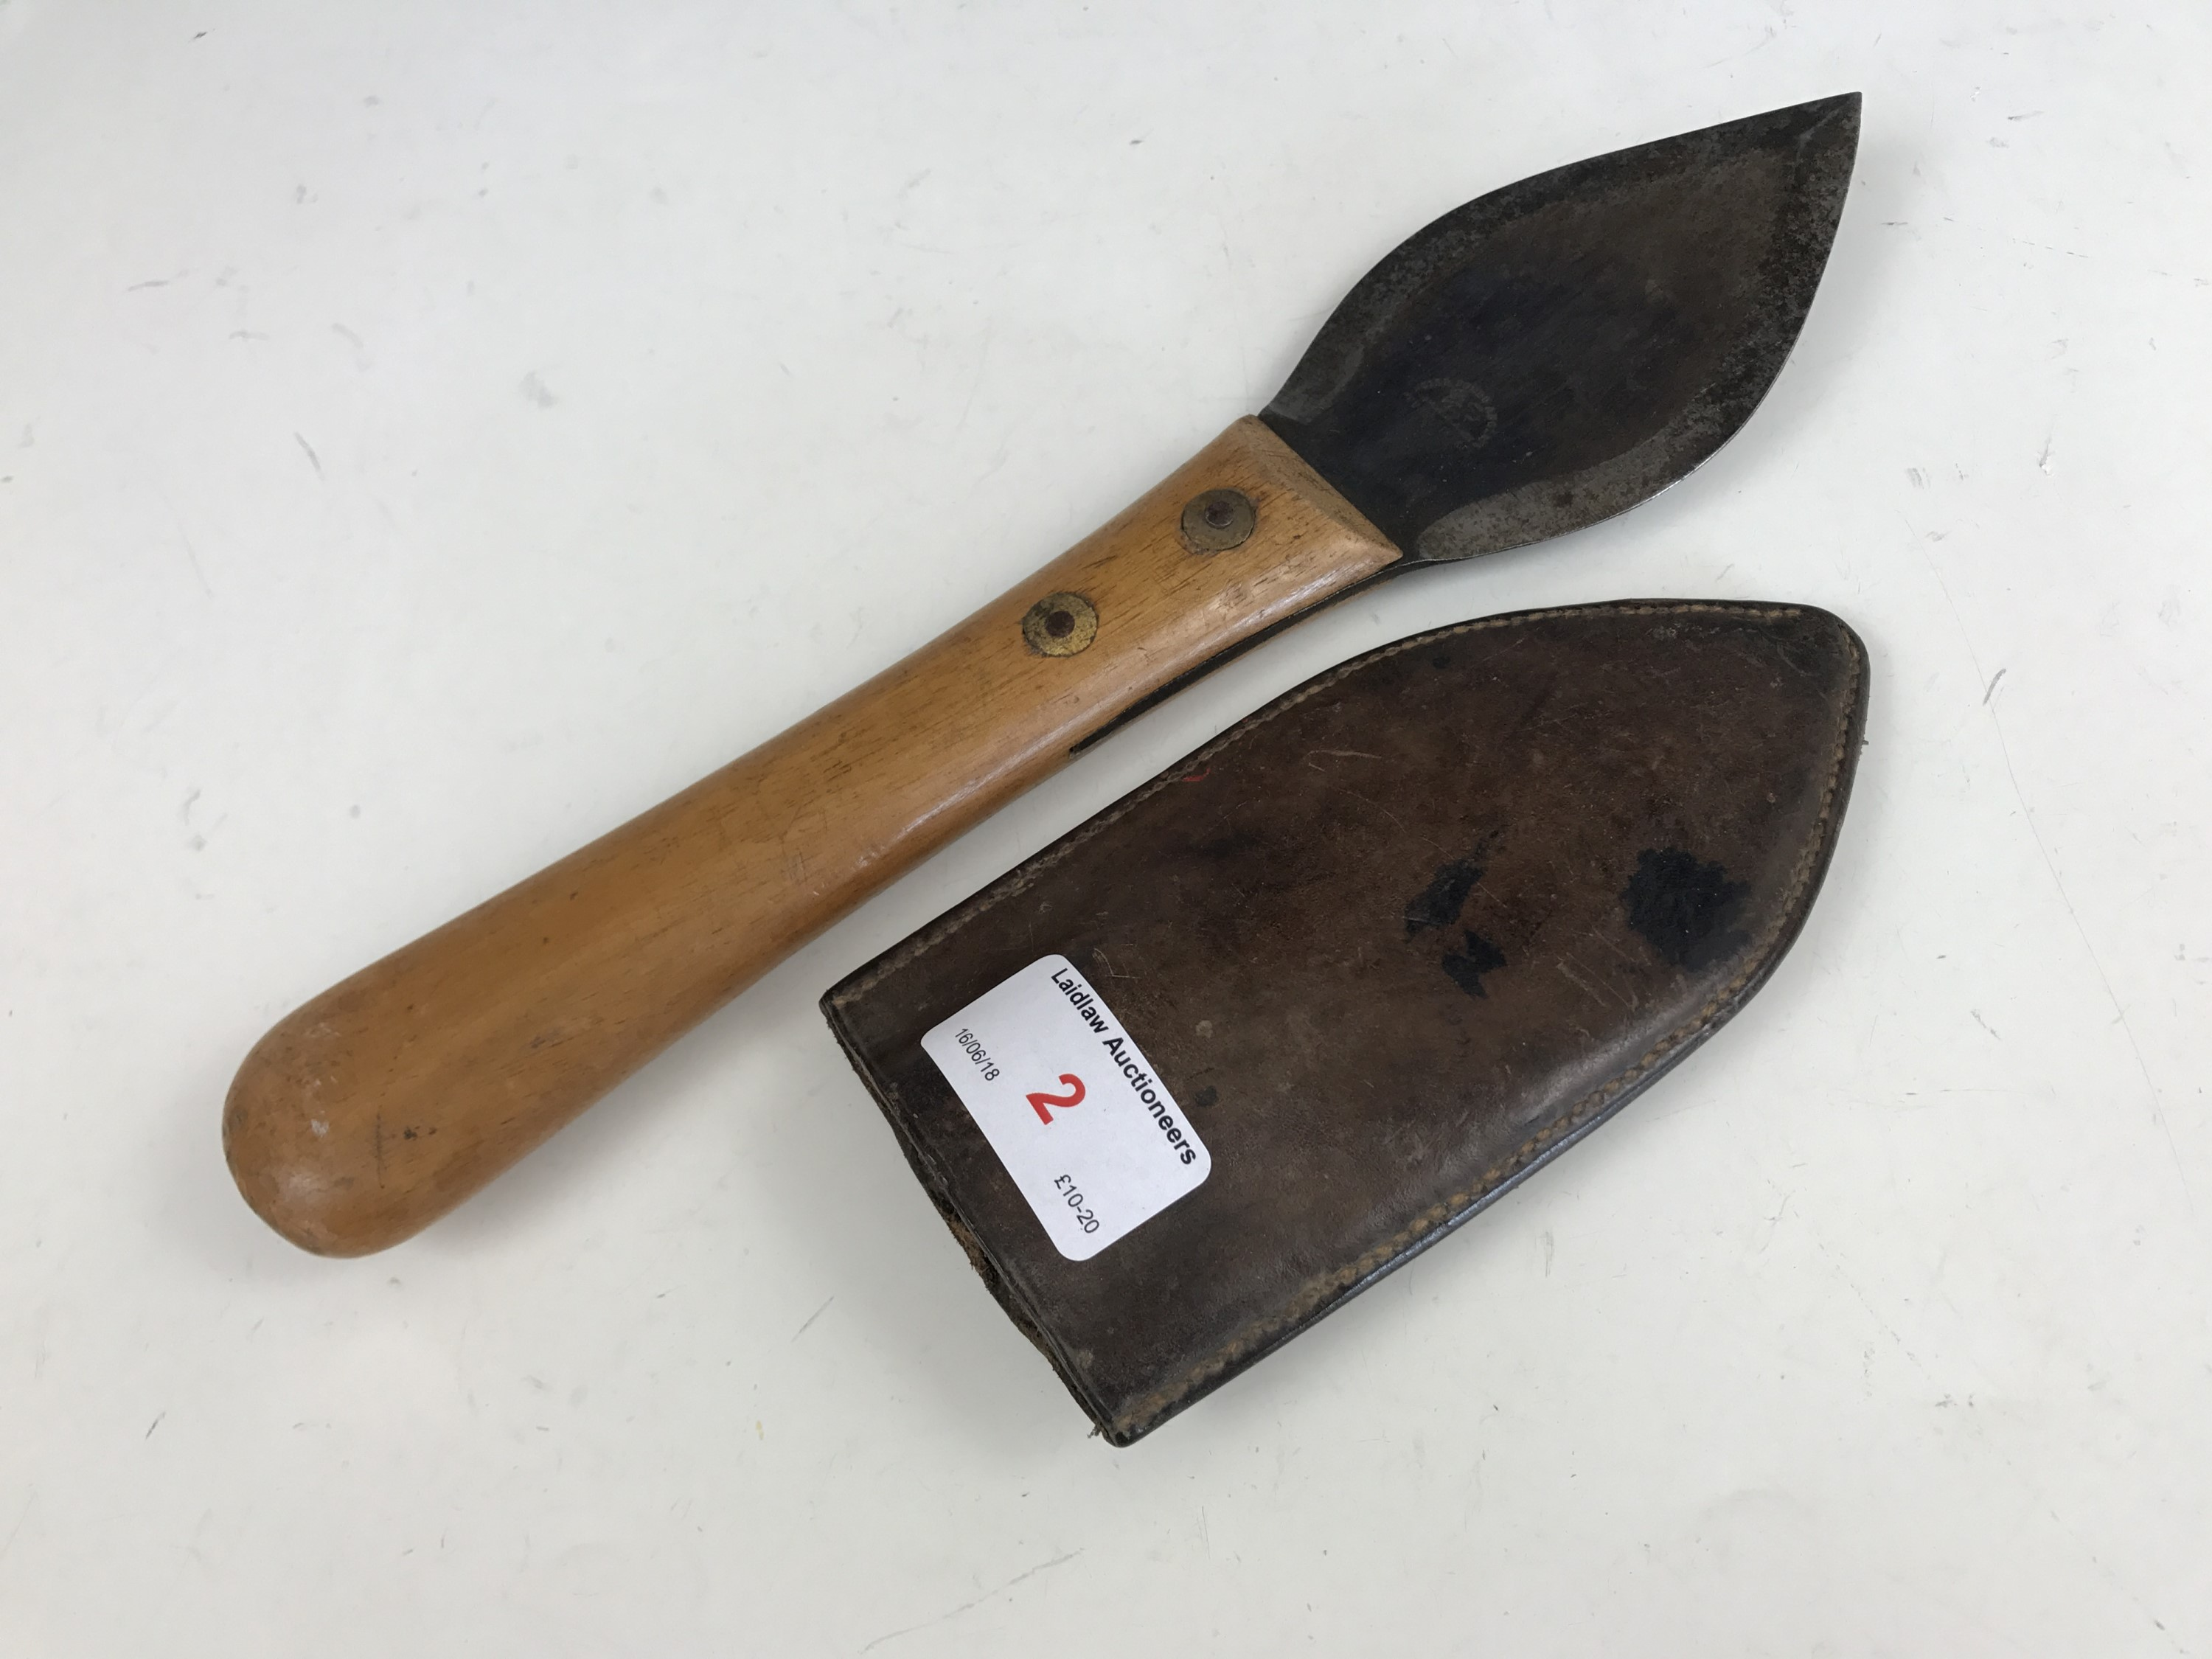 Lot 2 - A late 19th / early 20th Century wood carver's knife stamped Acier Fondu Anglais Peugeot Freres,